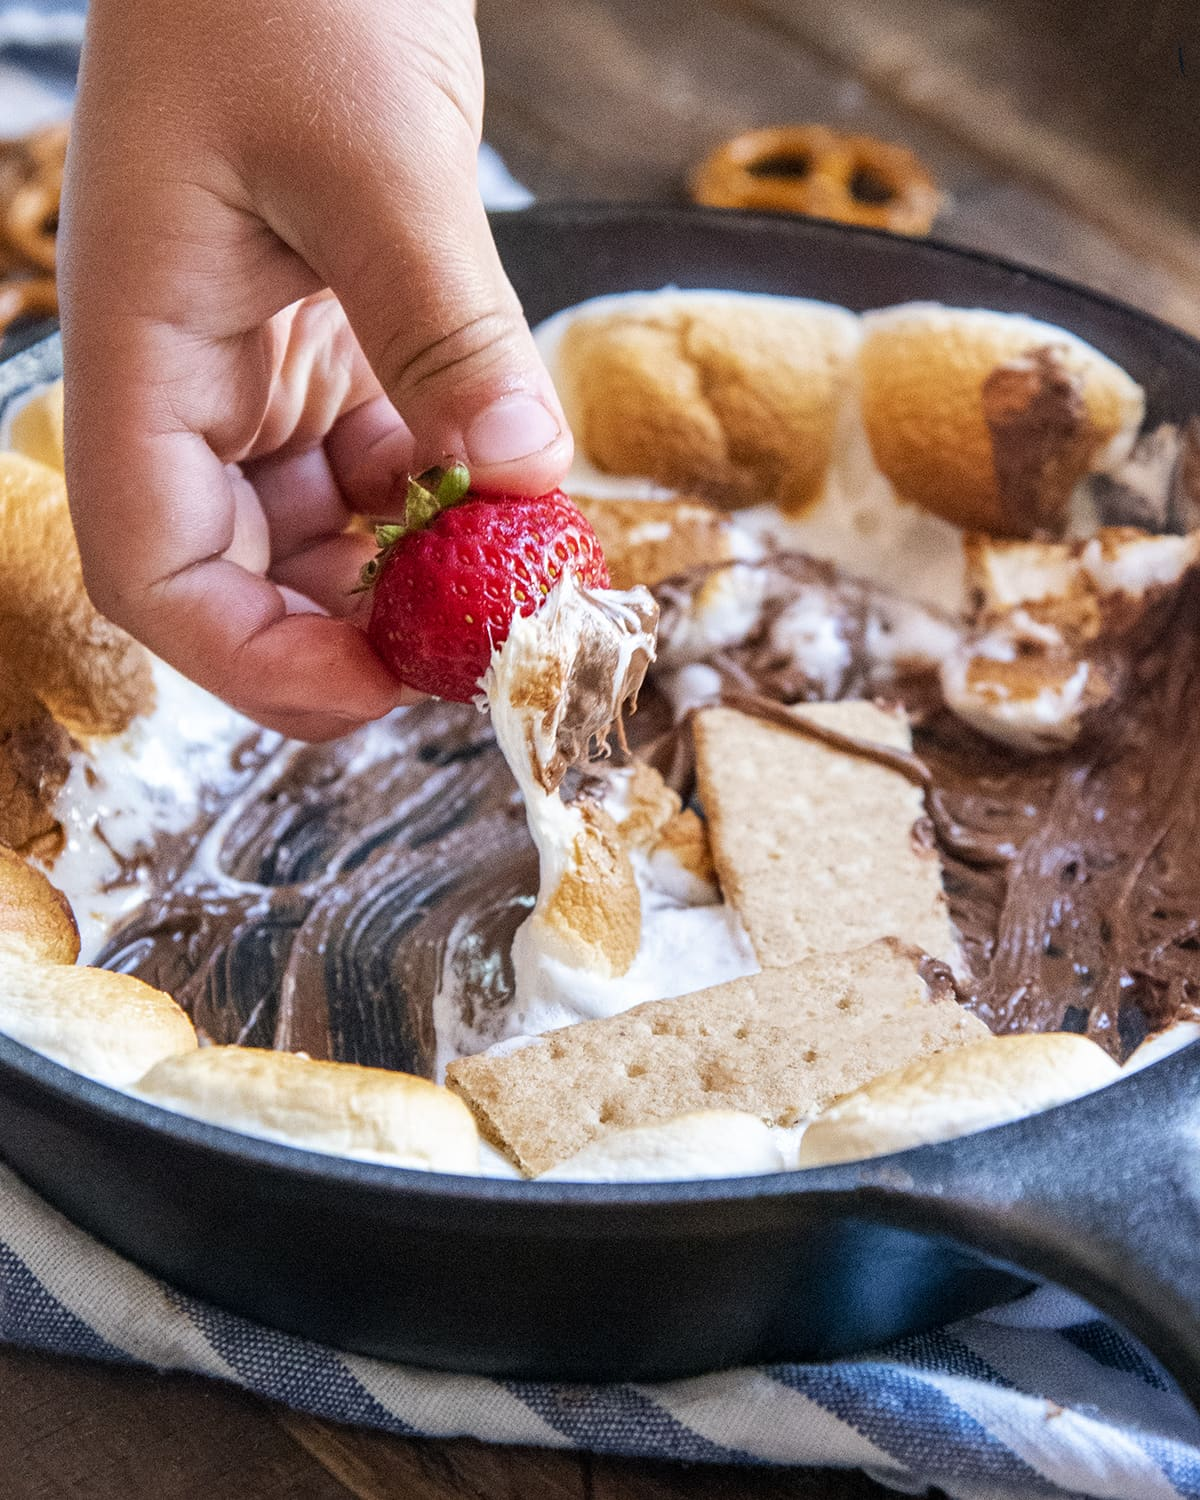 A hand dipping a strawberry into a pan of s'mores dip.